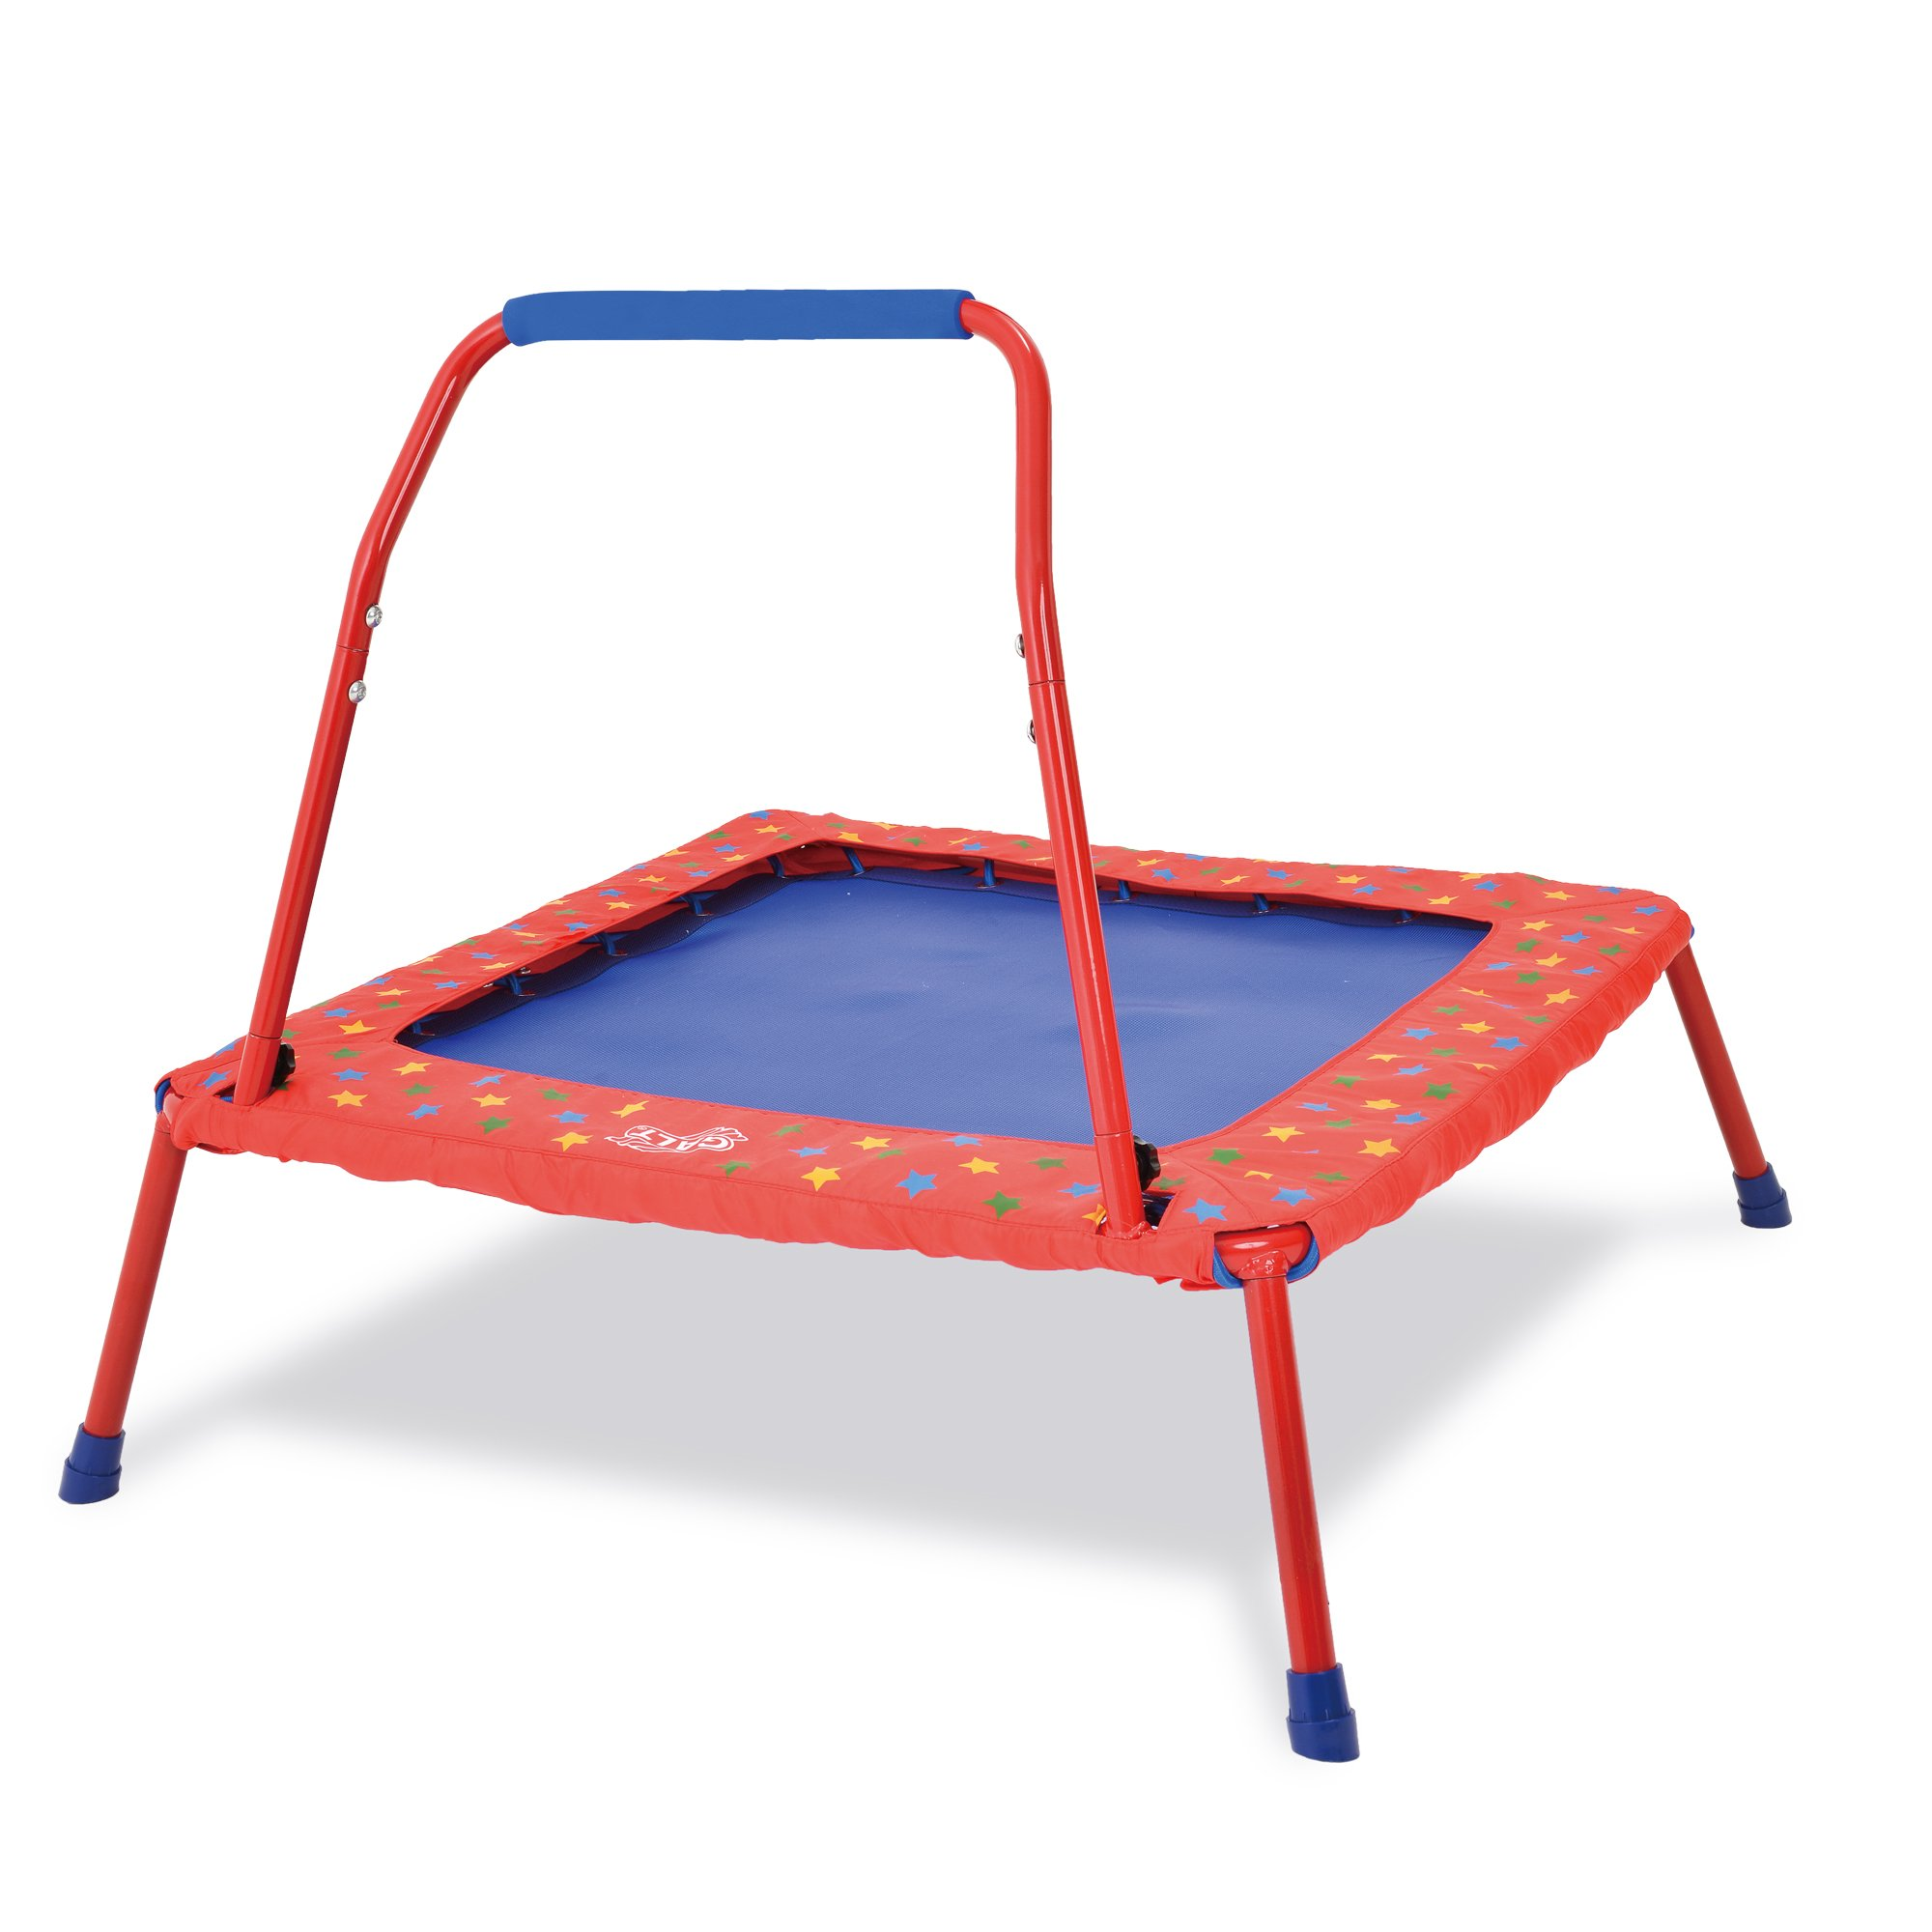 Galt Folding Trampoline by Galt Toys, Inc.